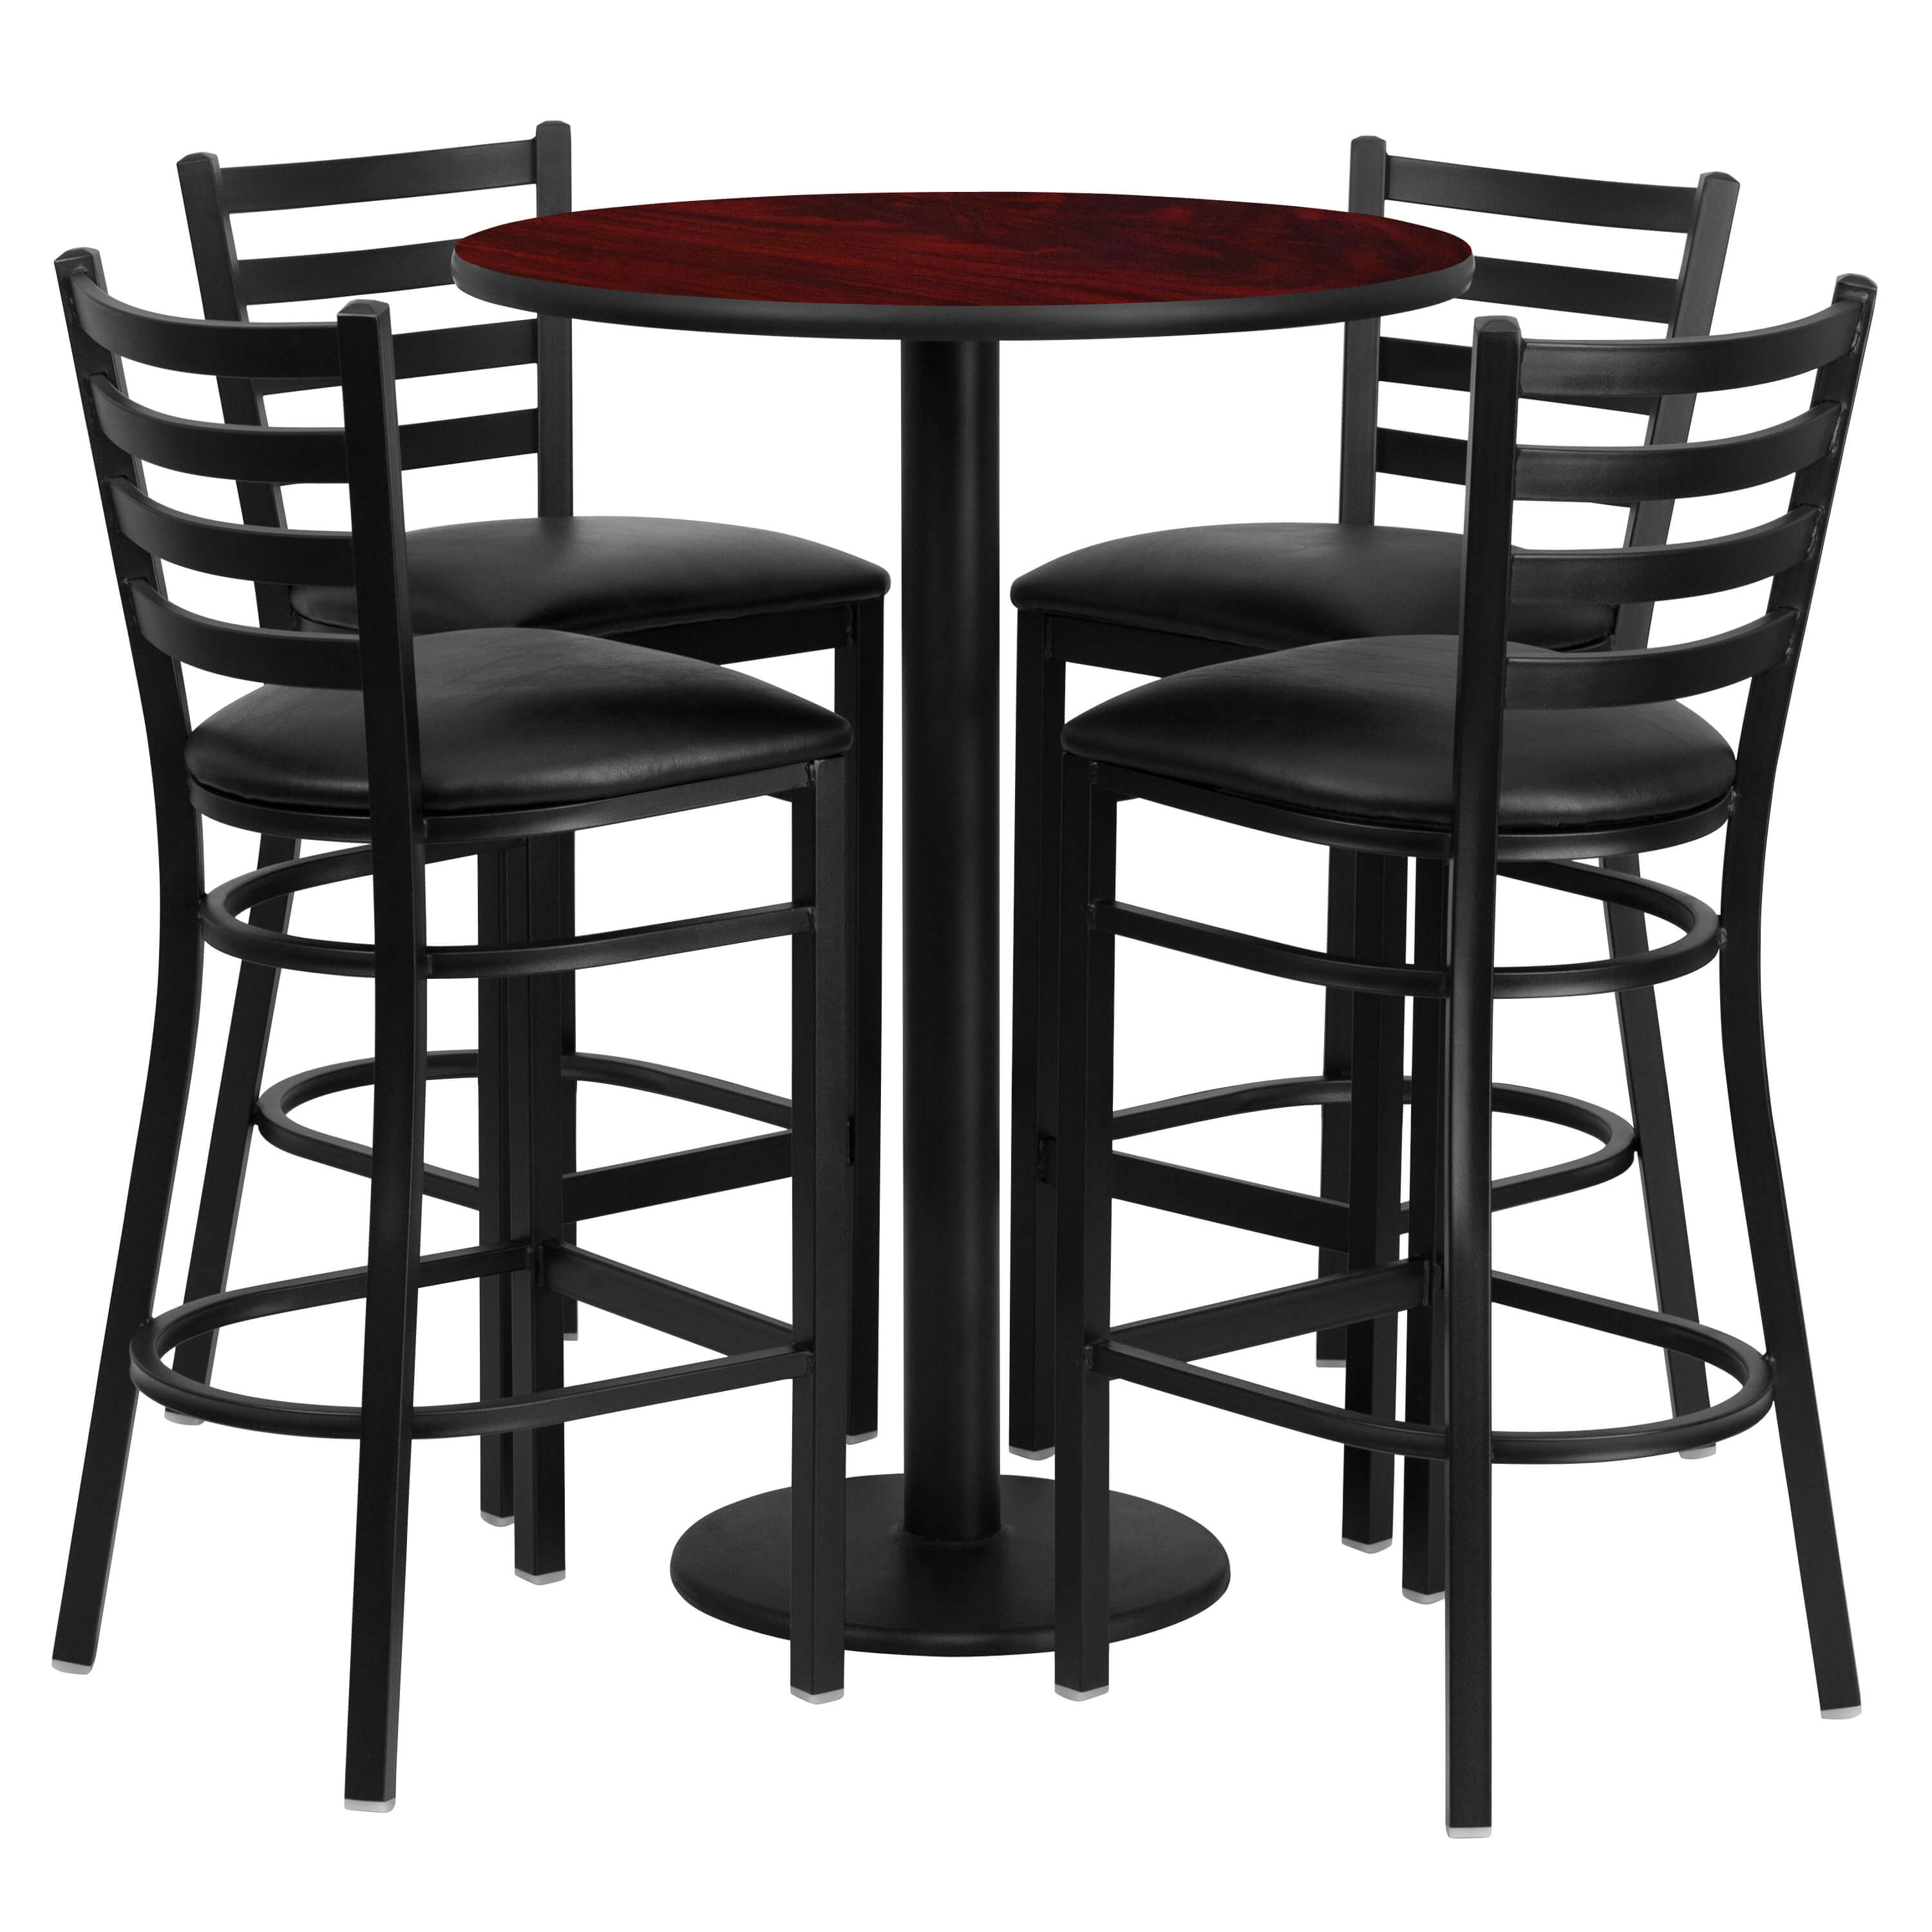 High top table set CUB RSRB1022 GG FLA